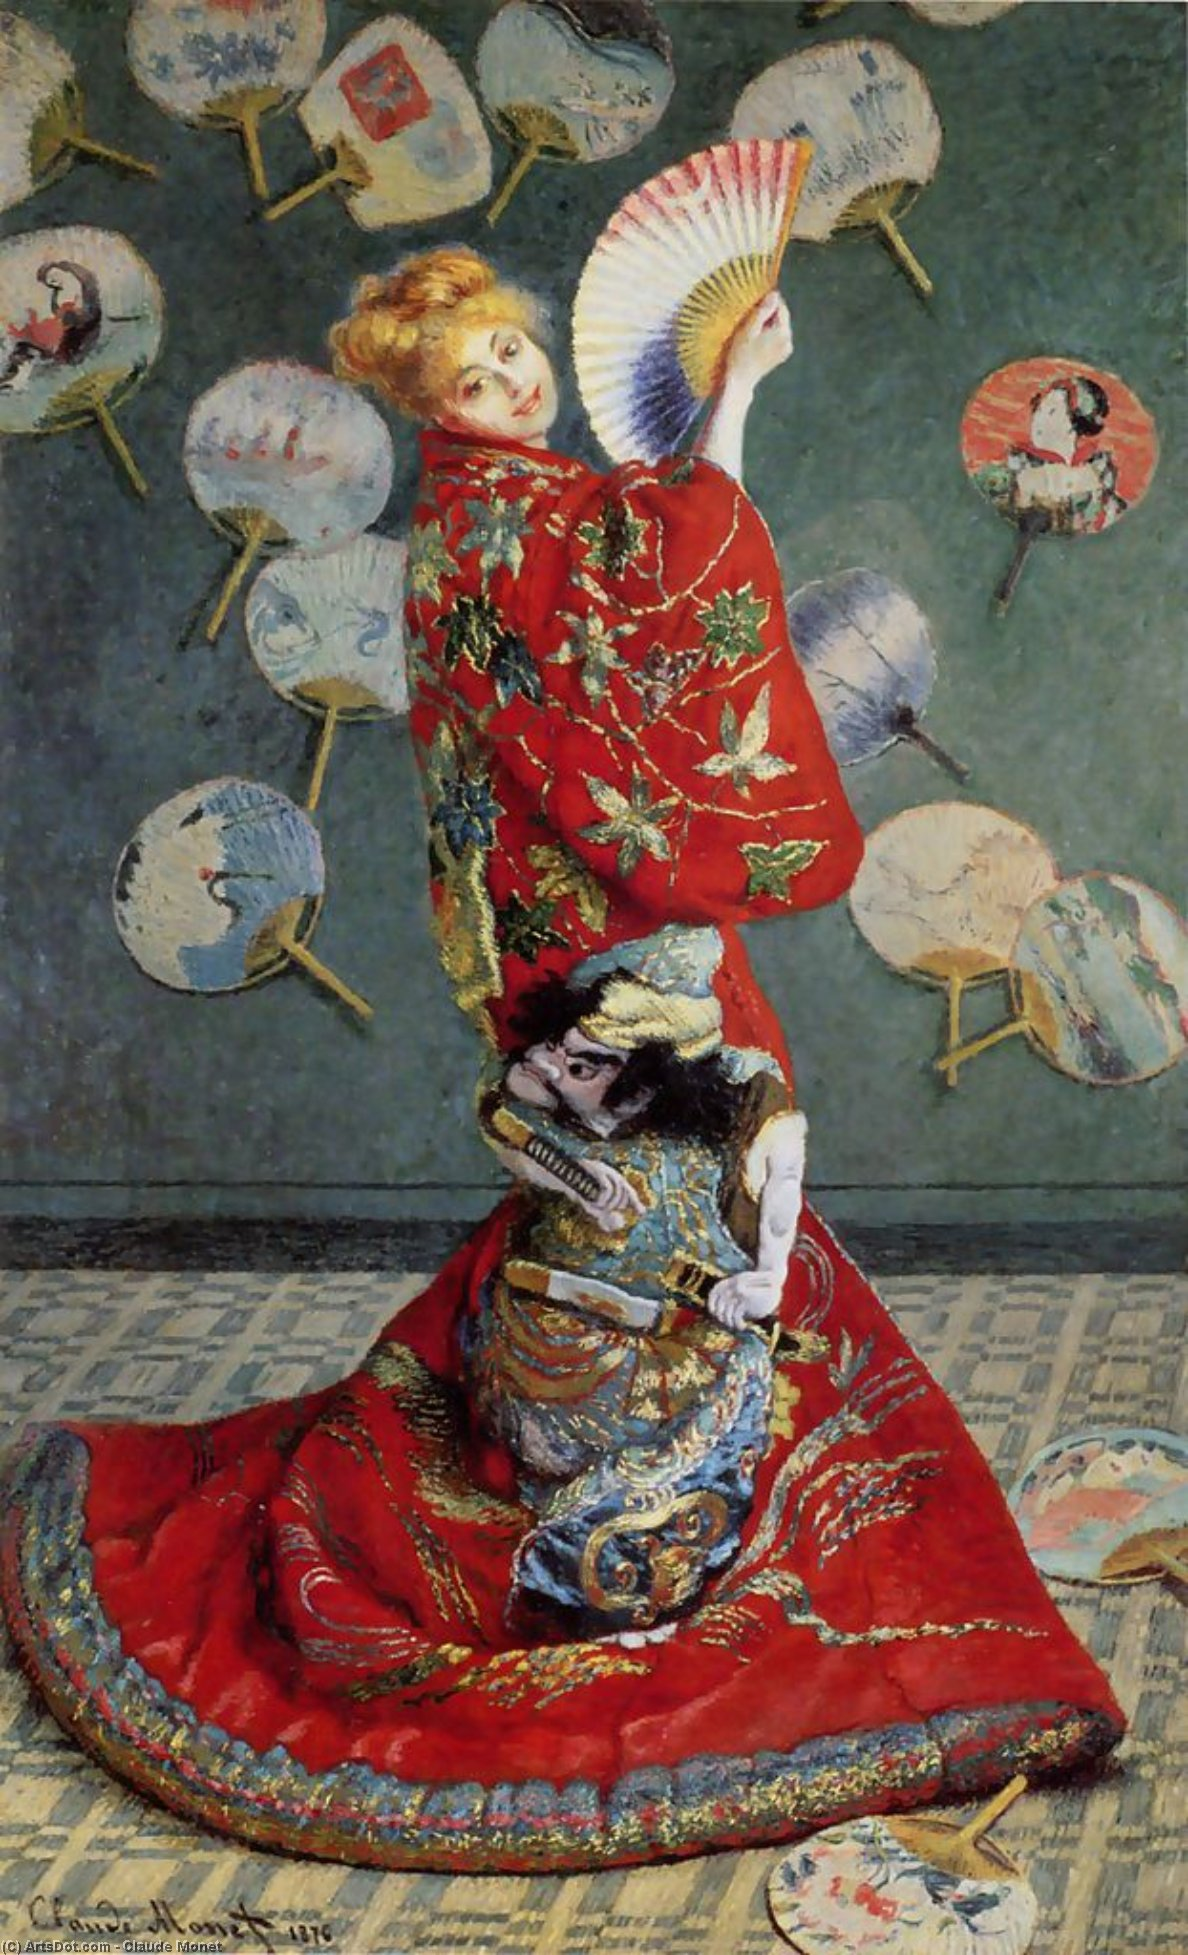 Wikioo.org - The Encyclopedia of Fine Arts - Painting, Artwork by Claude Monet - Madame Monet in Japanese Costume (La Japonaise)